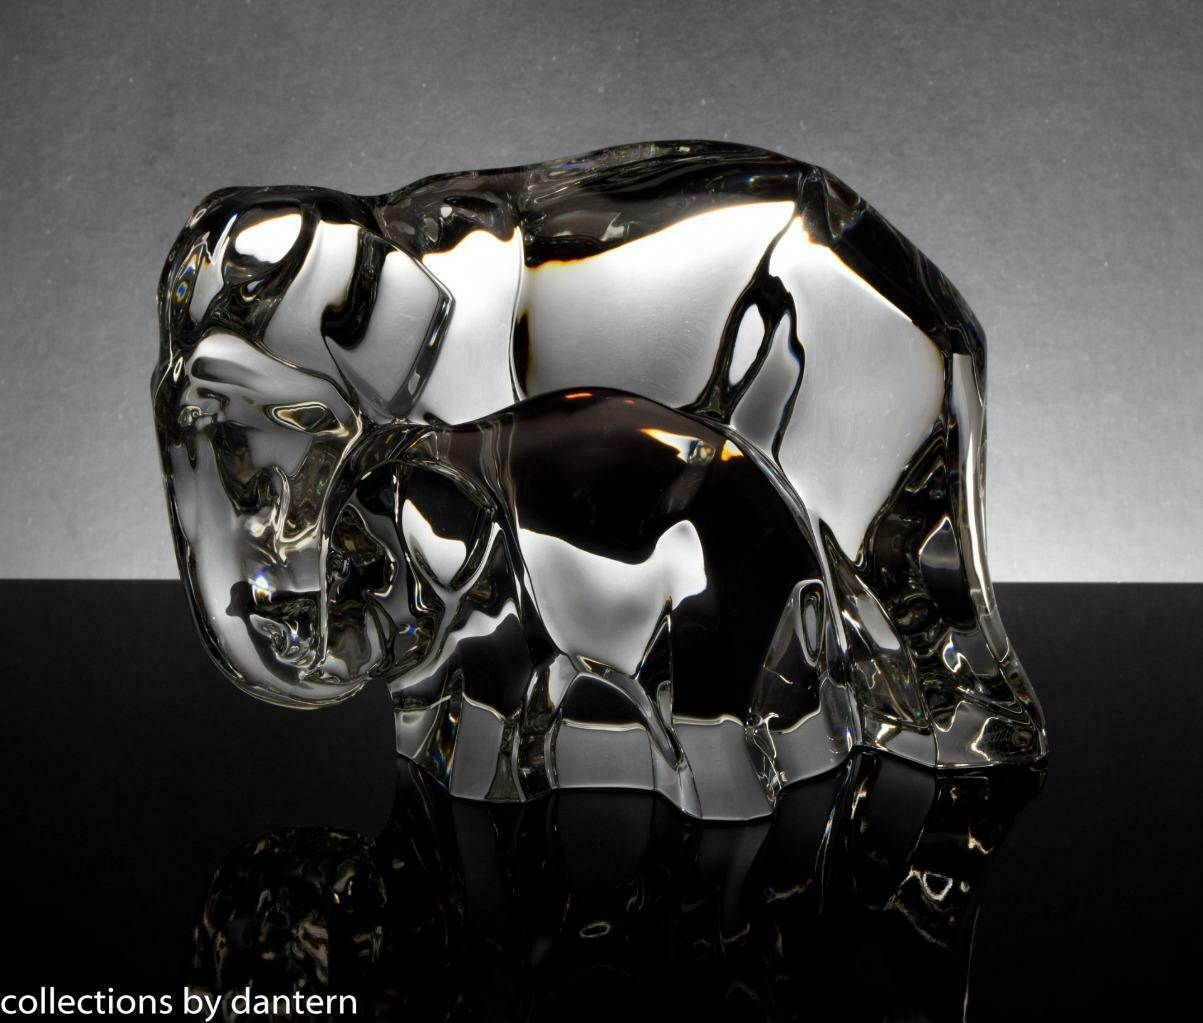 Baccarat Crystal Elephant Mother and Calf Figurine - $2,599.00